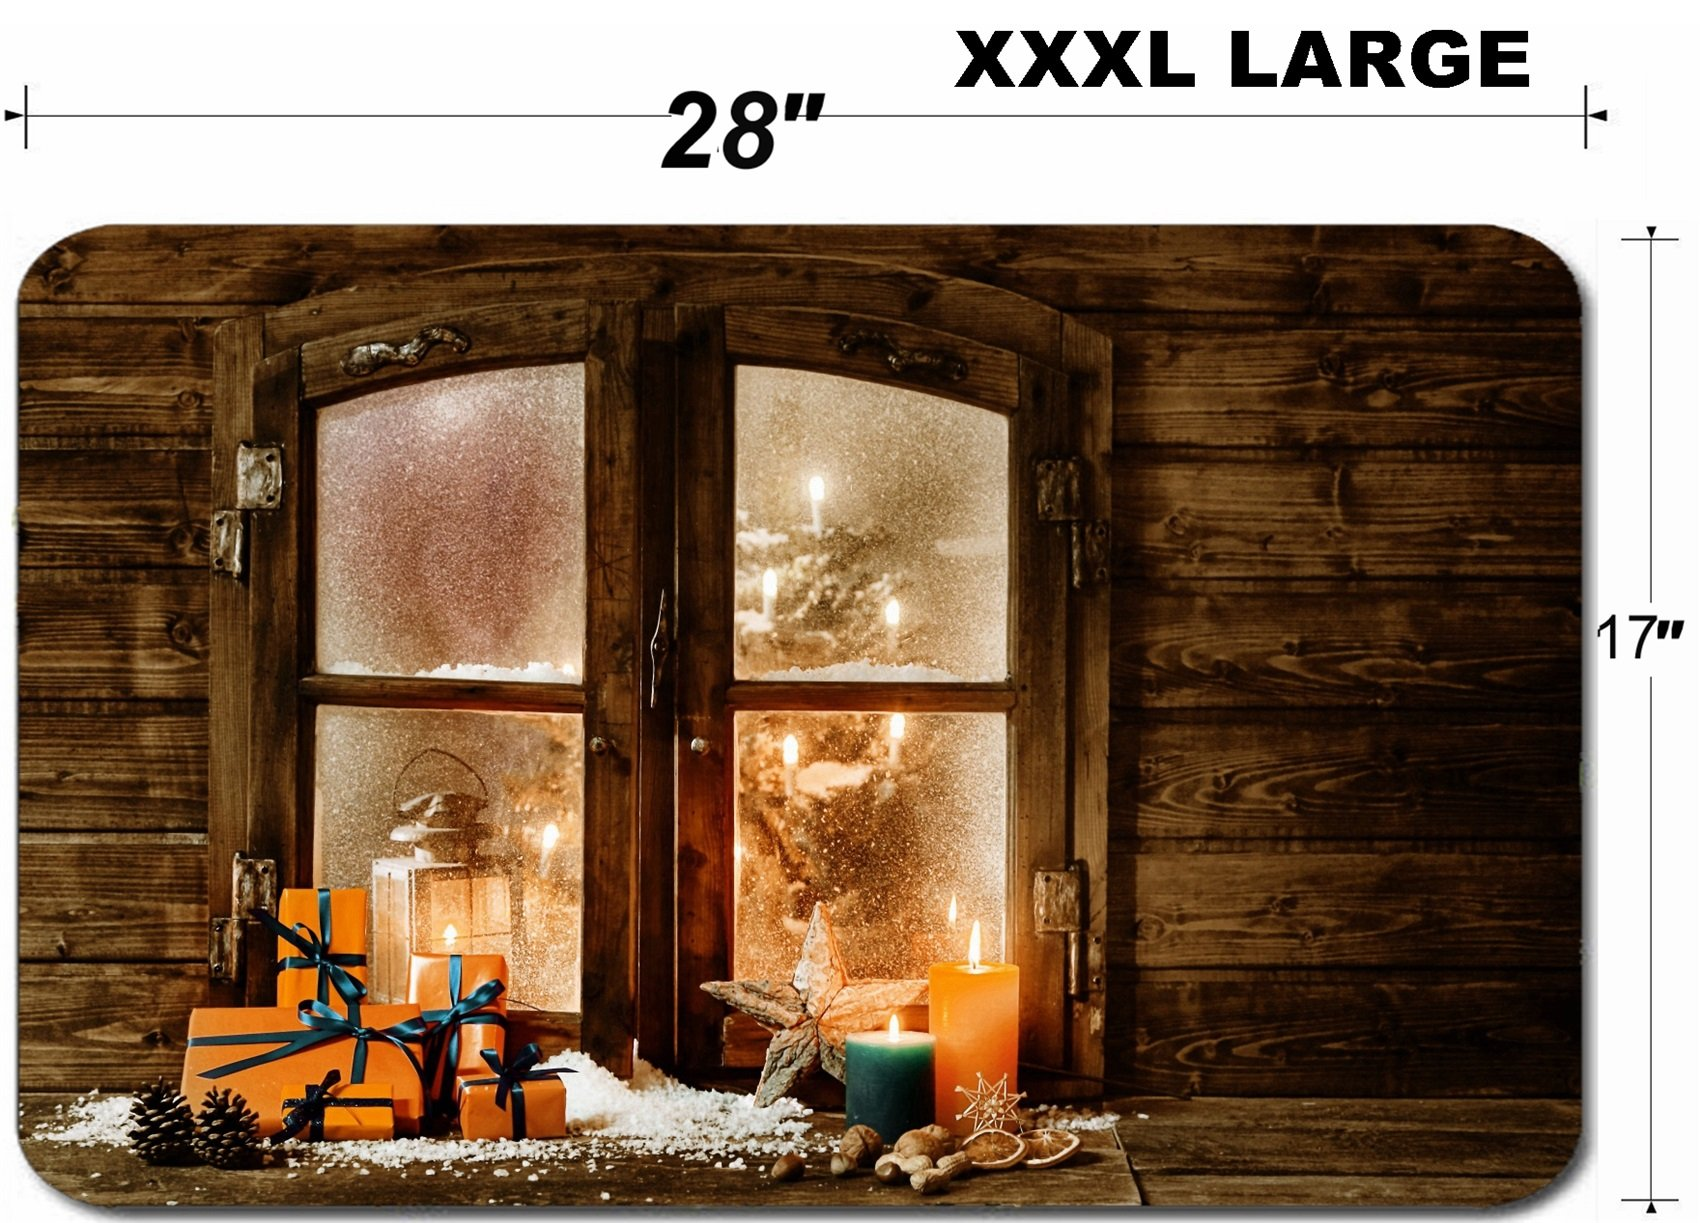 Liili Large Table Mat Non-Slip Natural Rubber Desk Pads IMAGE ID 32279256 Festive wooden Christmas cabin window with gift wrapped colorful orange presents burning